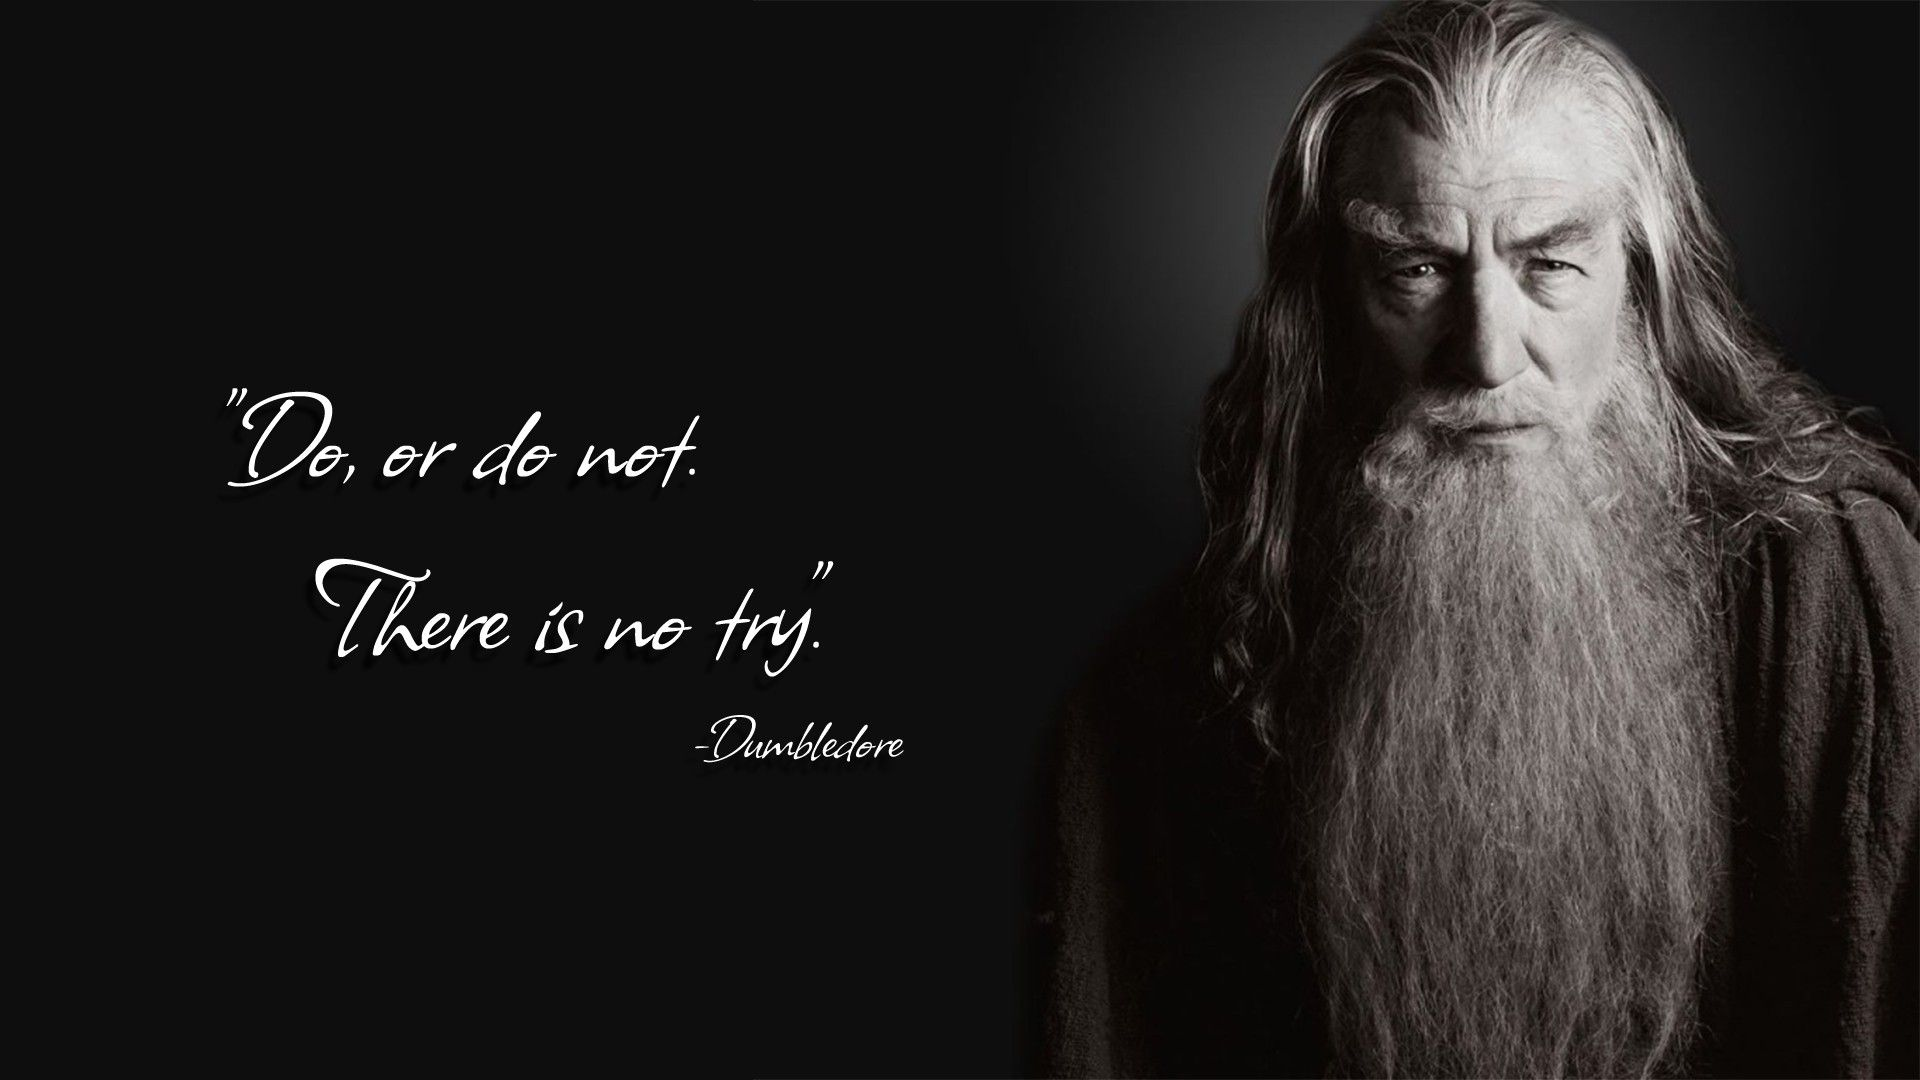 Factually Wrong Quote Attribution Star Trek Quotes Harry Potter Quotes Wallpaper Dumbledore Quotes